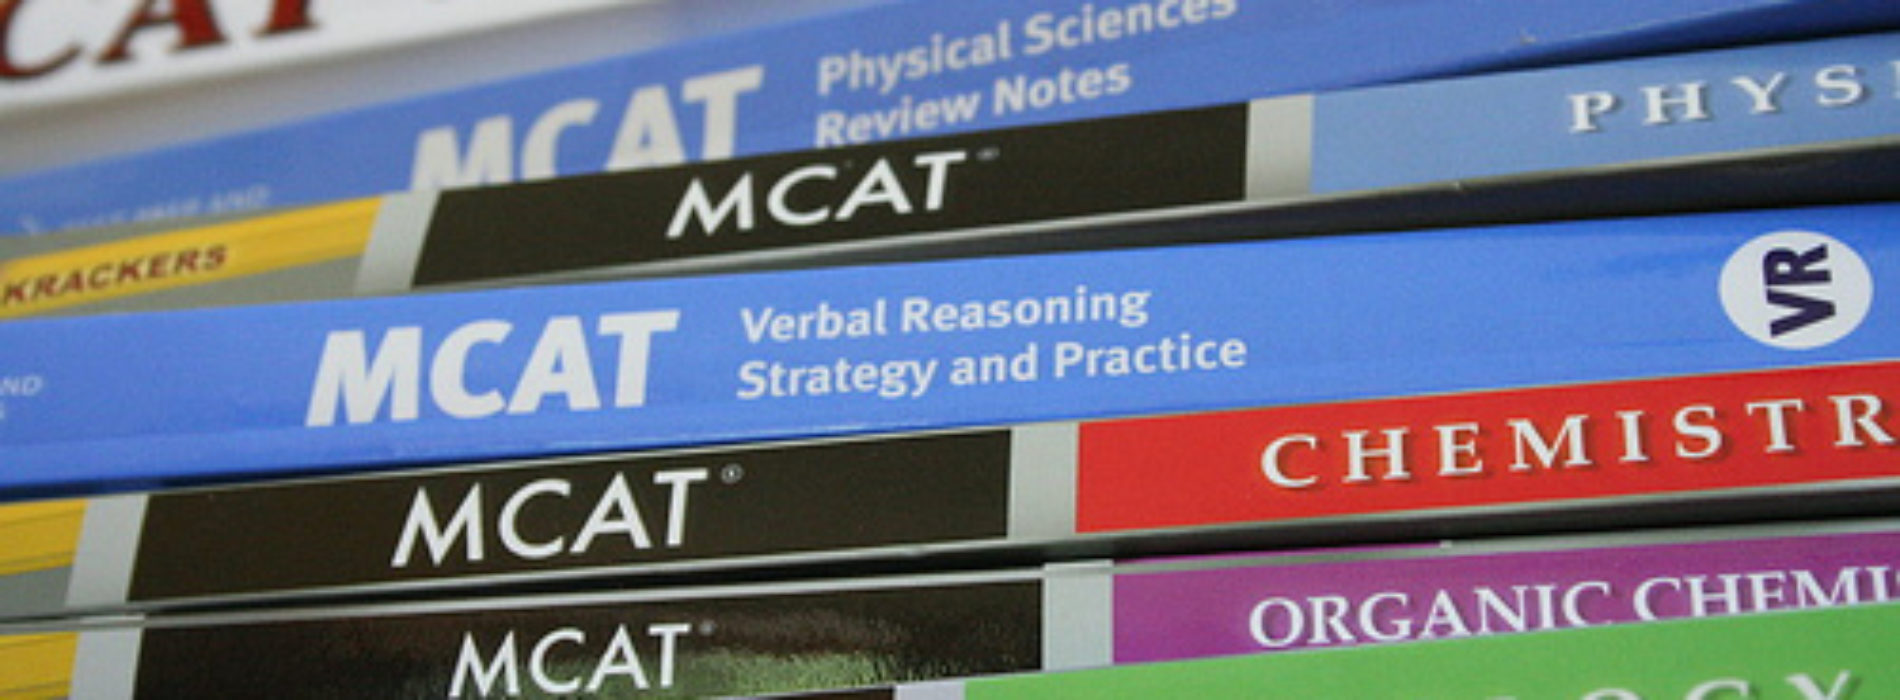 MCAT Panel Discussion Set for Feb. 8